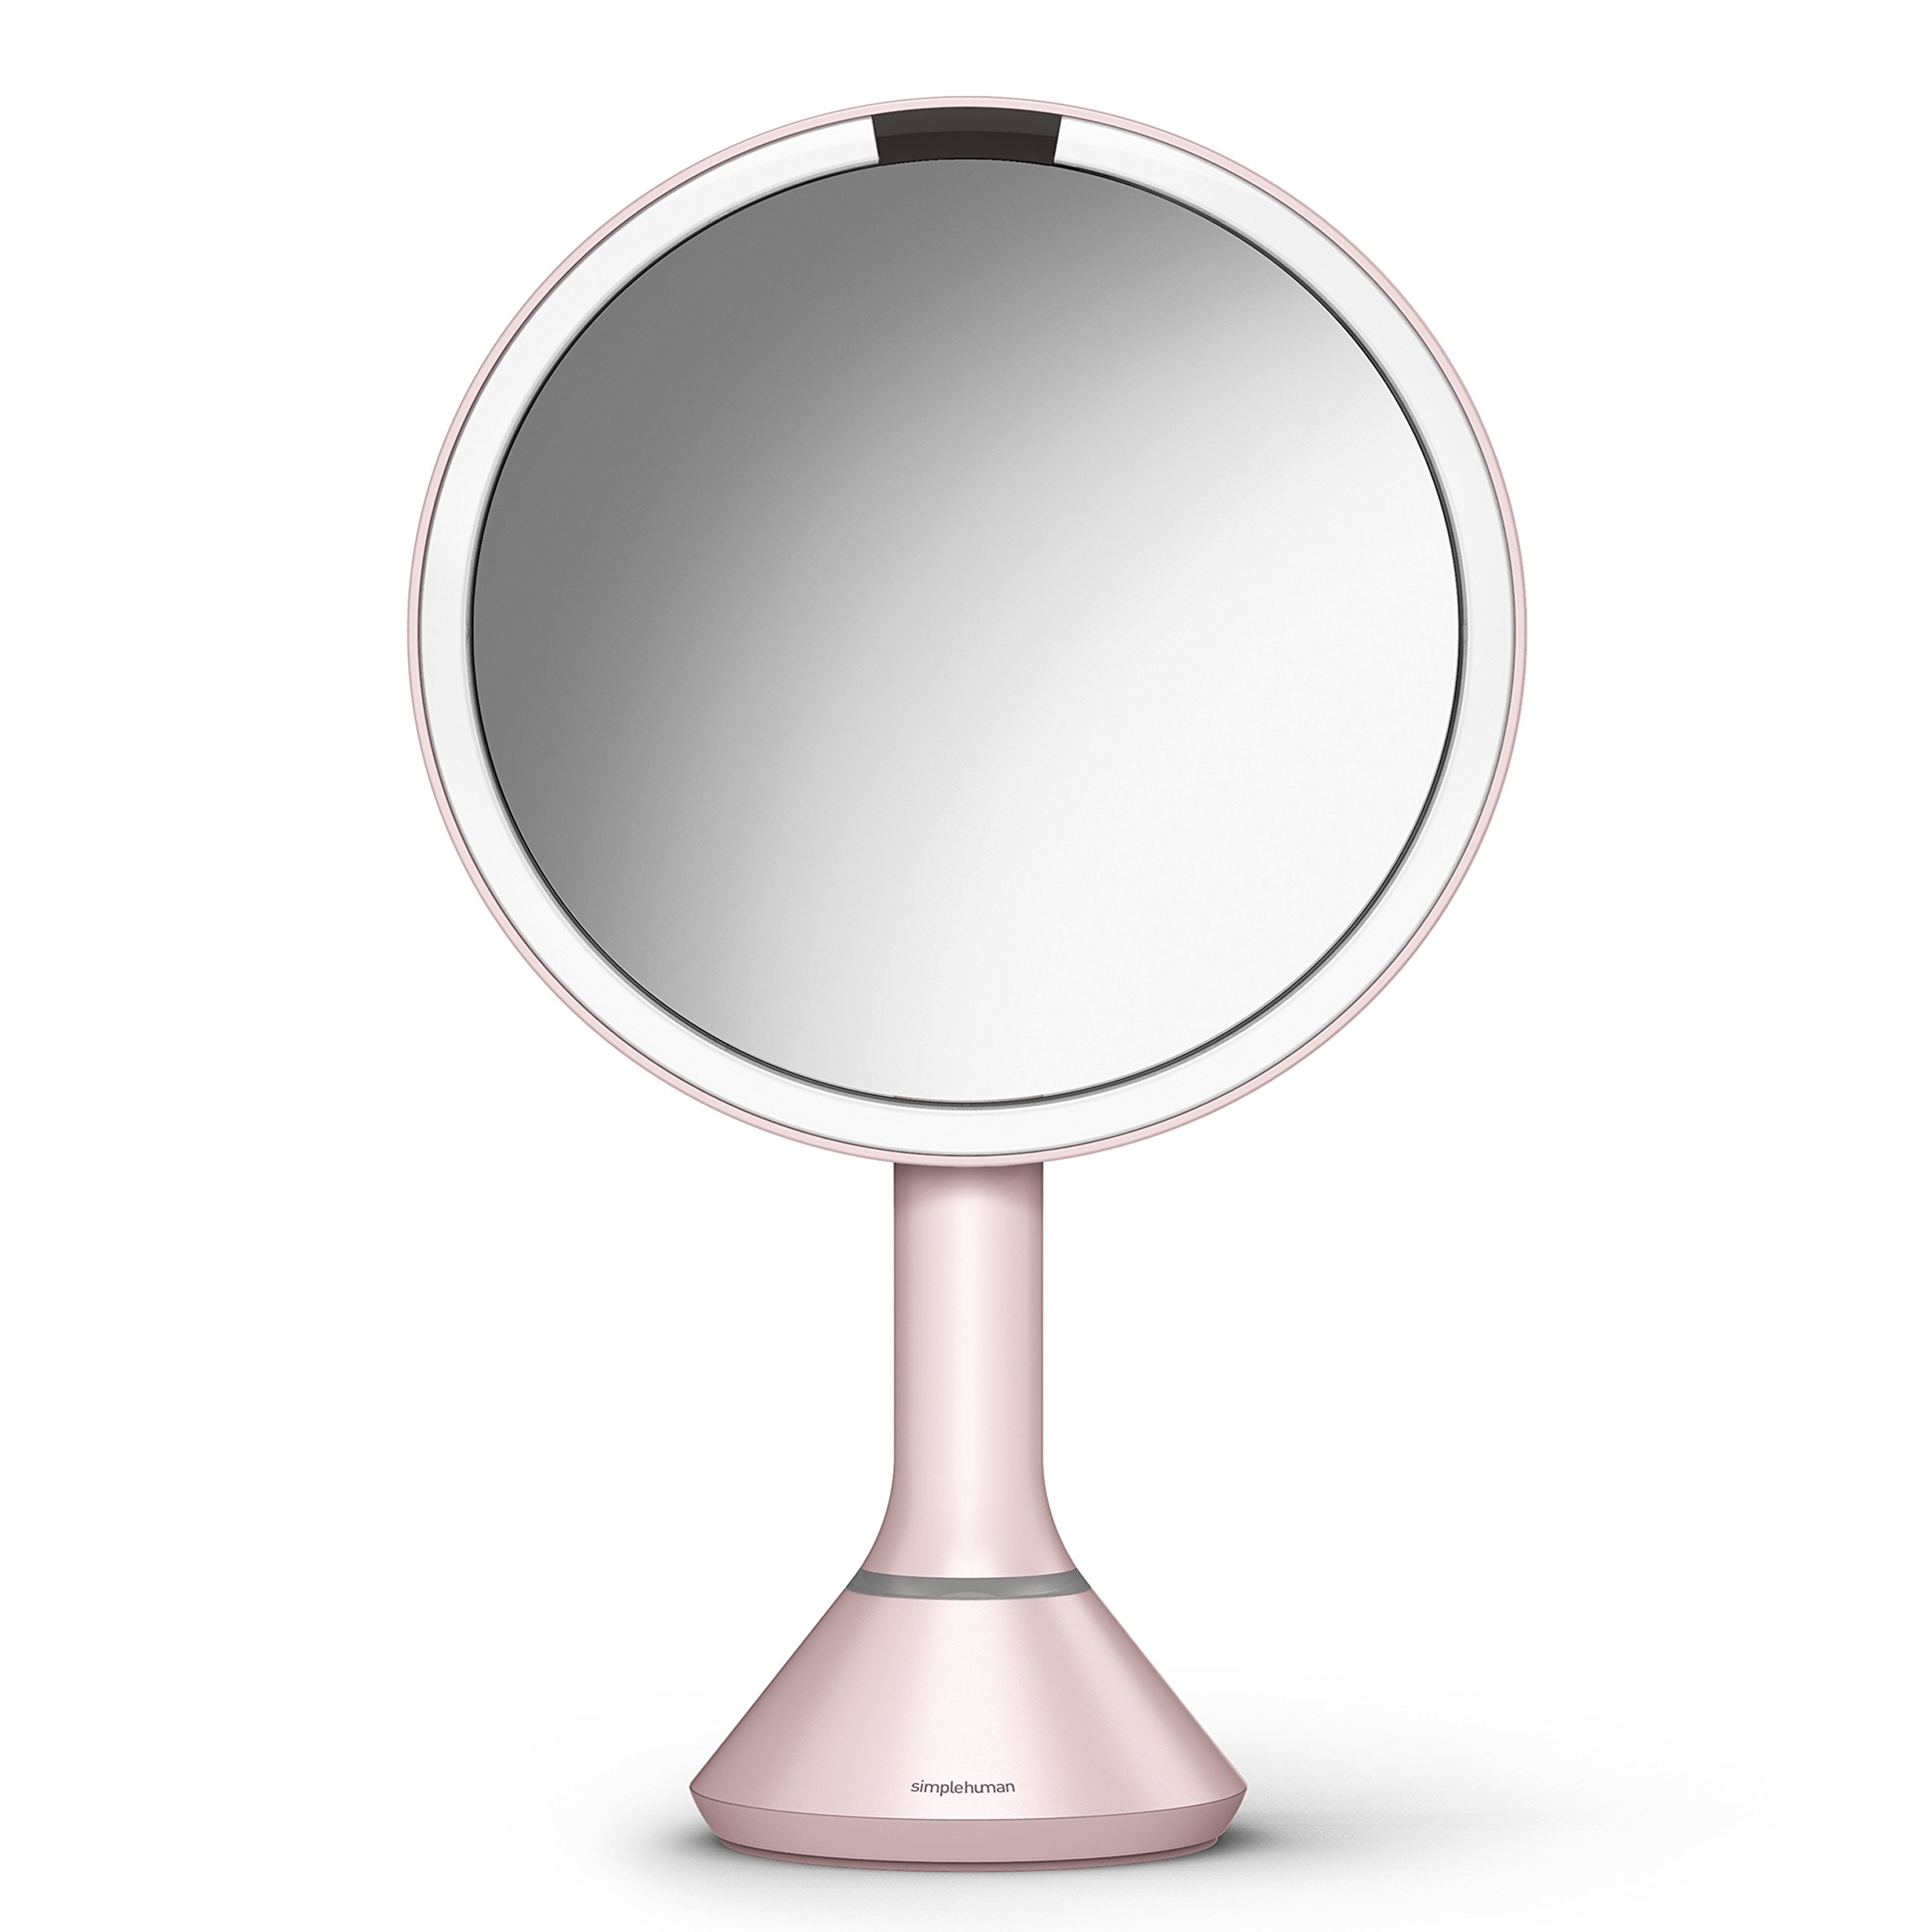 simplehuman Sensor Lighted Makeup Vanity Mirror, 8'' Round With Touch-Control Brightness, 5x Magnification, Pink Stainless Steel, Rechargeable And Cordless